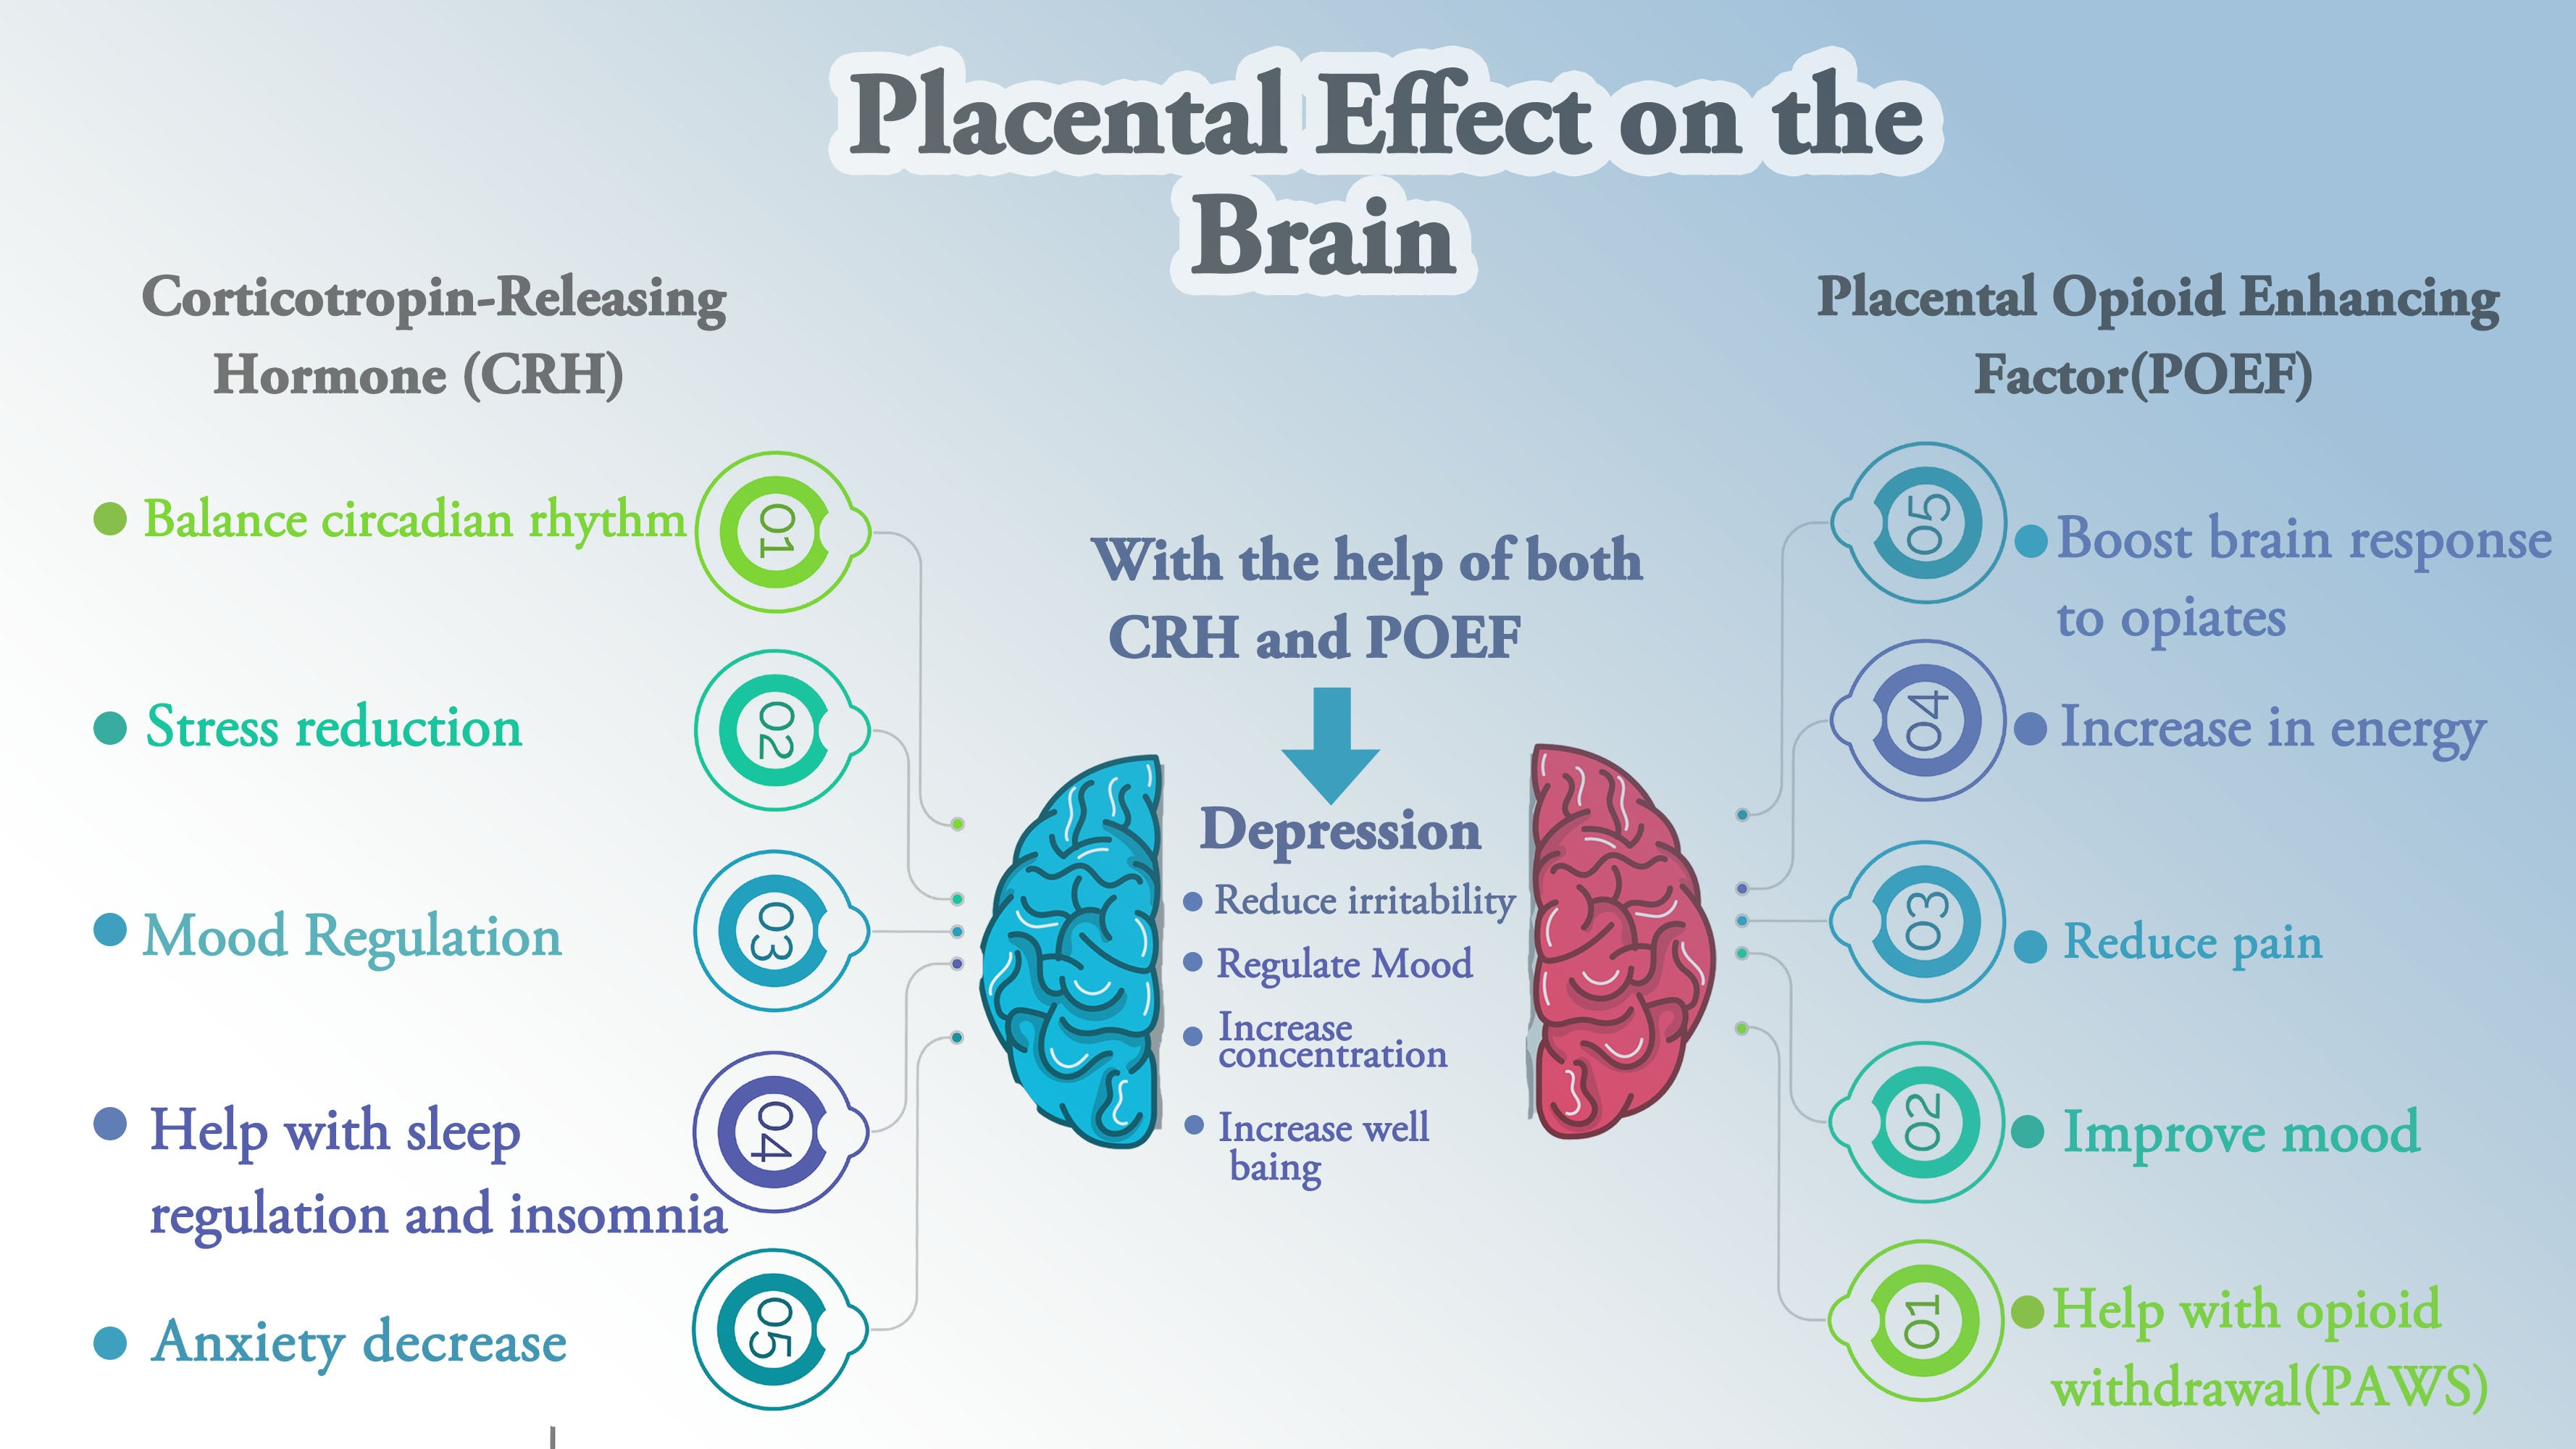 Placental Effect on the Brain Placental CRH helps reduce stress, anxiety regulate mood POEF boosts mood energy decrease pain together placenta reduces depression and increases well-being vitamin placenta placenta benefits placenta pills